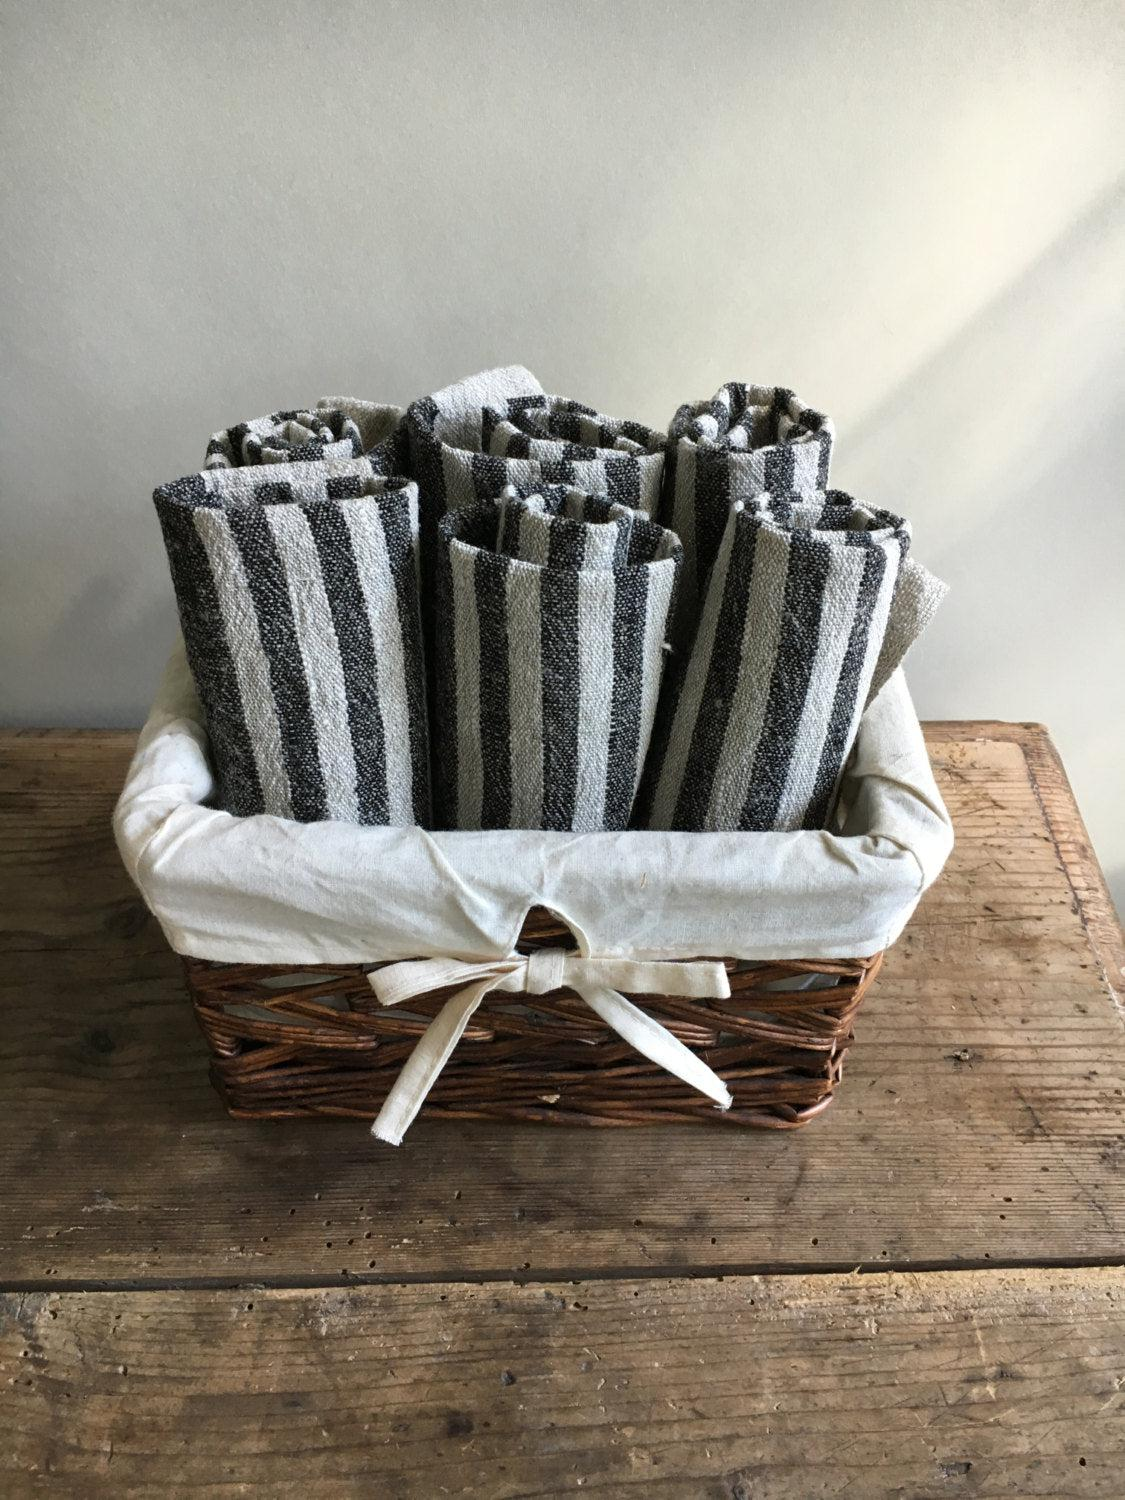 Rustic Kitchen towels, Set of four Linen Towels, Striped Towels Kitchen towels Durable towels Country house towels tea towels natural linen